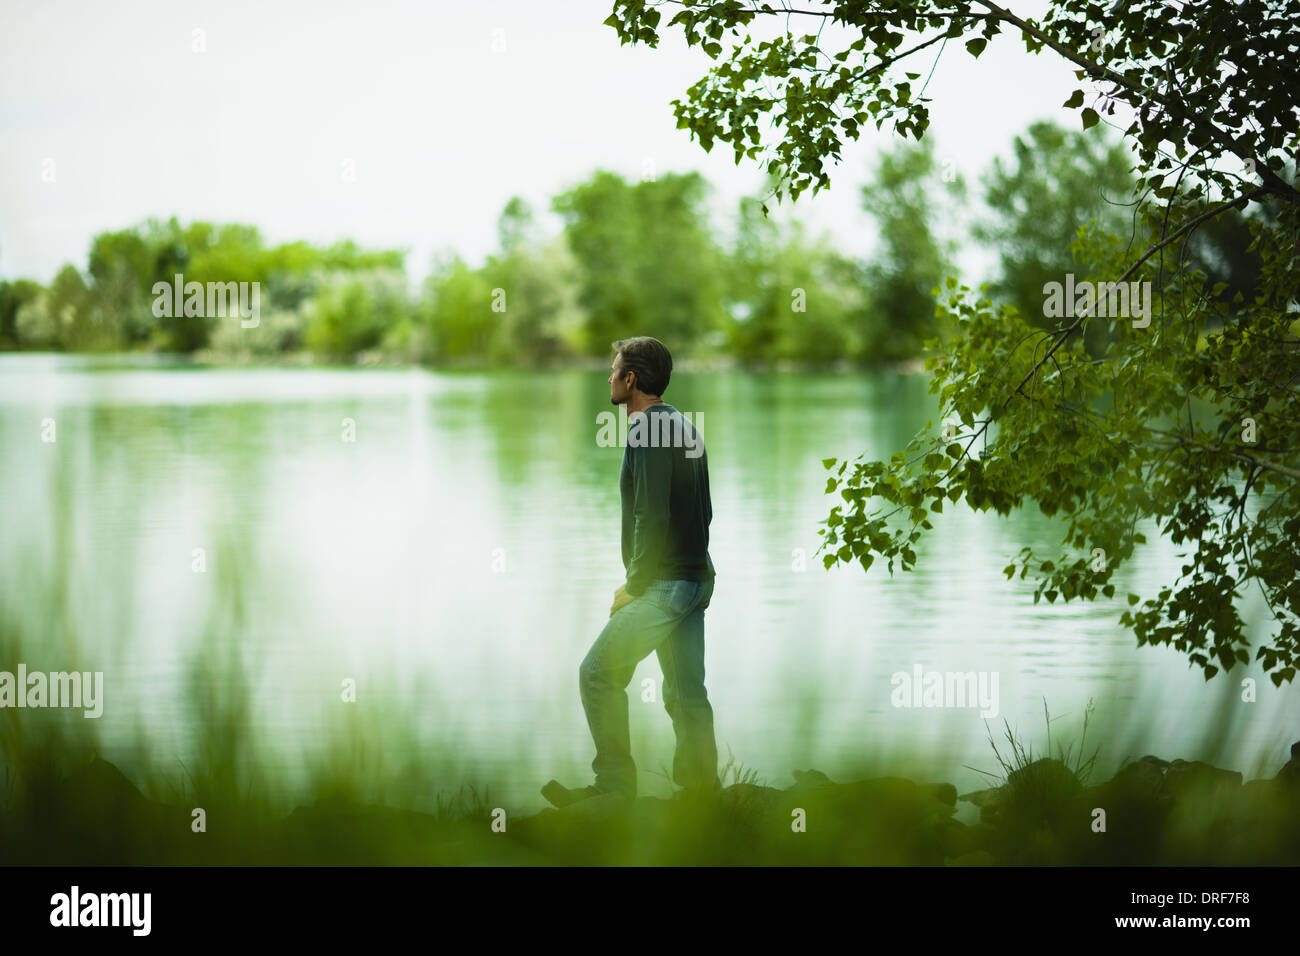 Colorado USA man standing alone looking in distance in thought - Stock Image